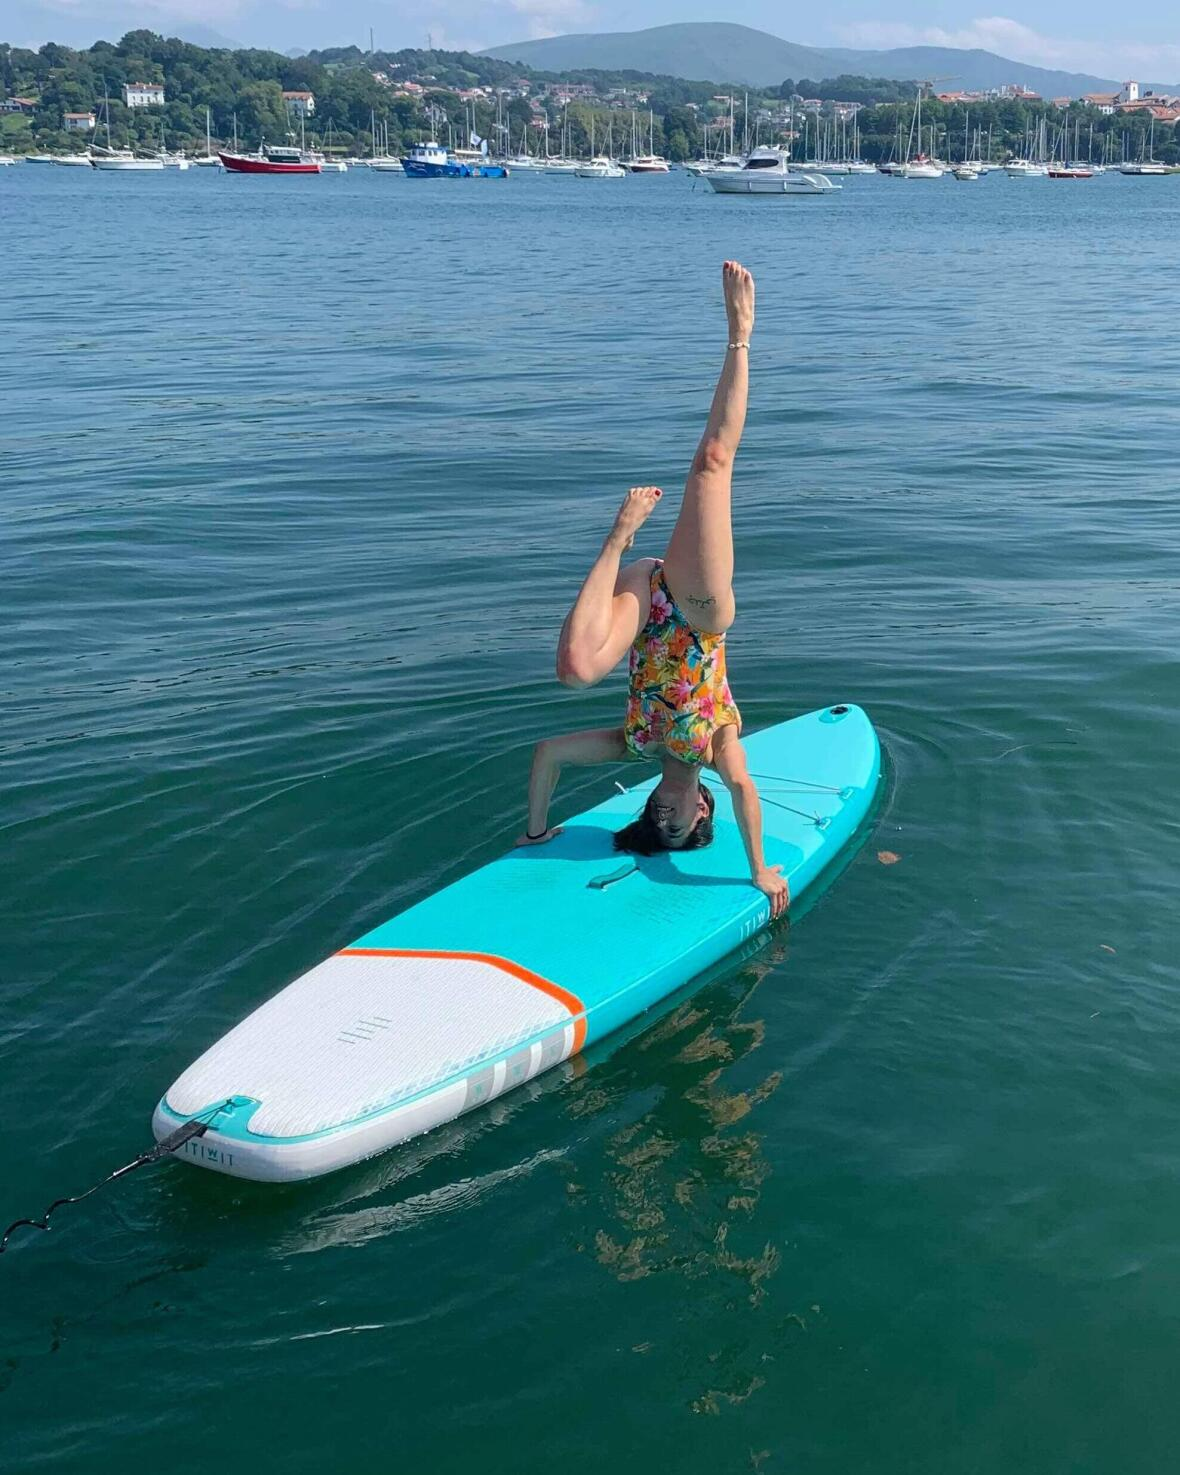 pilate stand up paddle